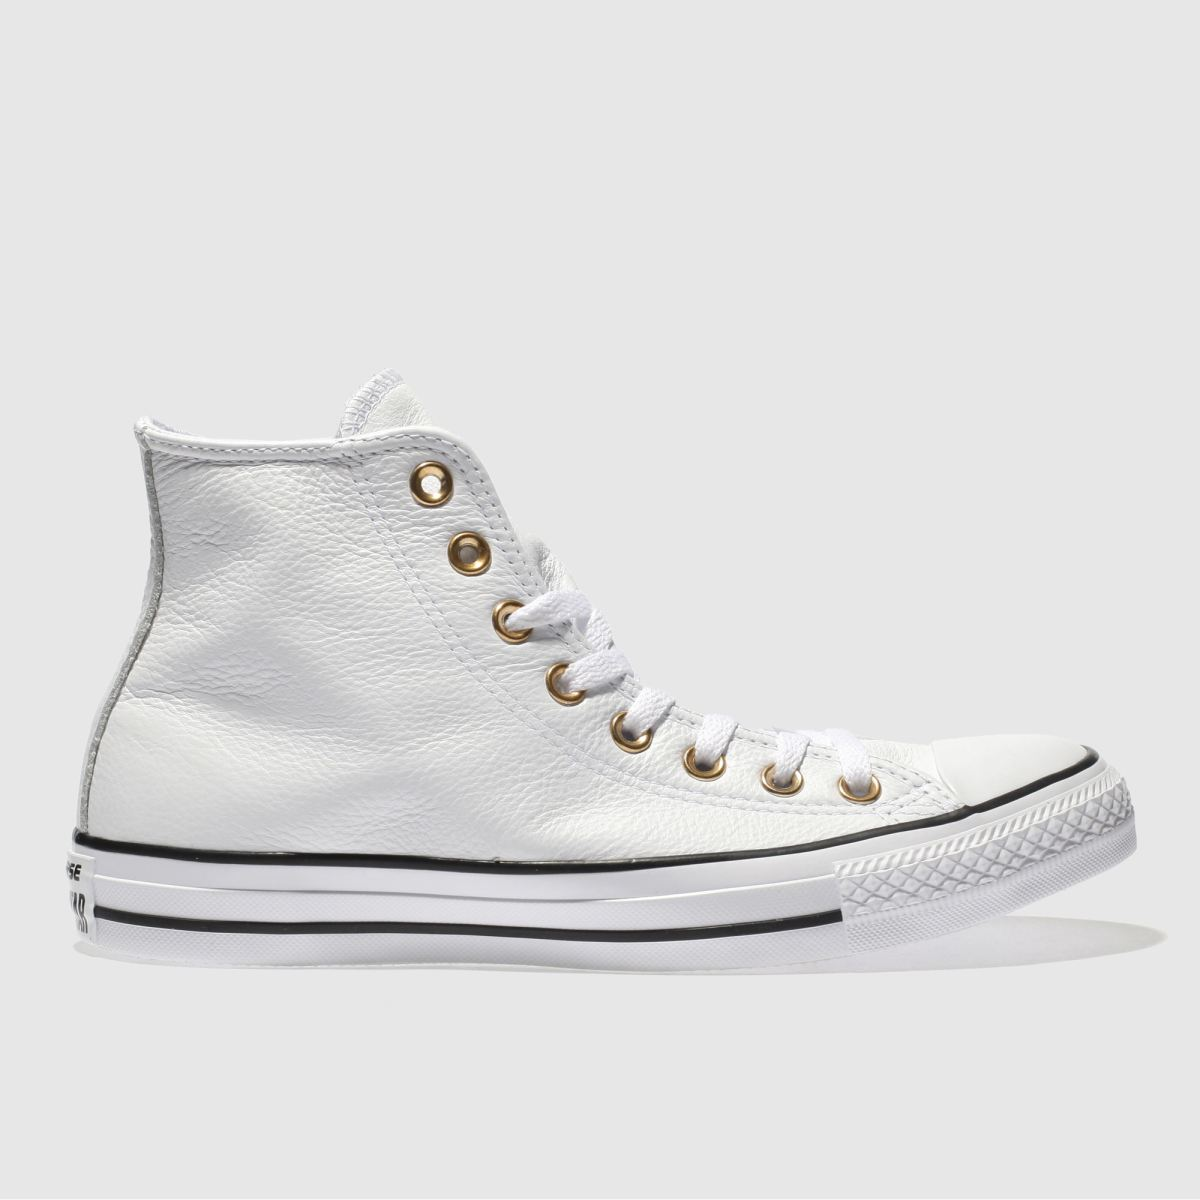 Converse White   Gold Rose Gold Eyelets Hi Trainers - Schuh at Westquay -  Shop Online 737f05033